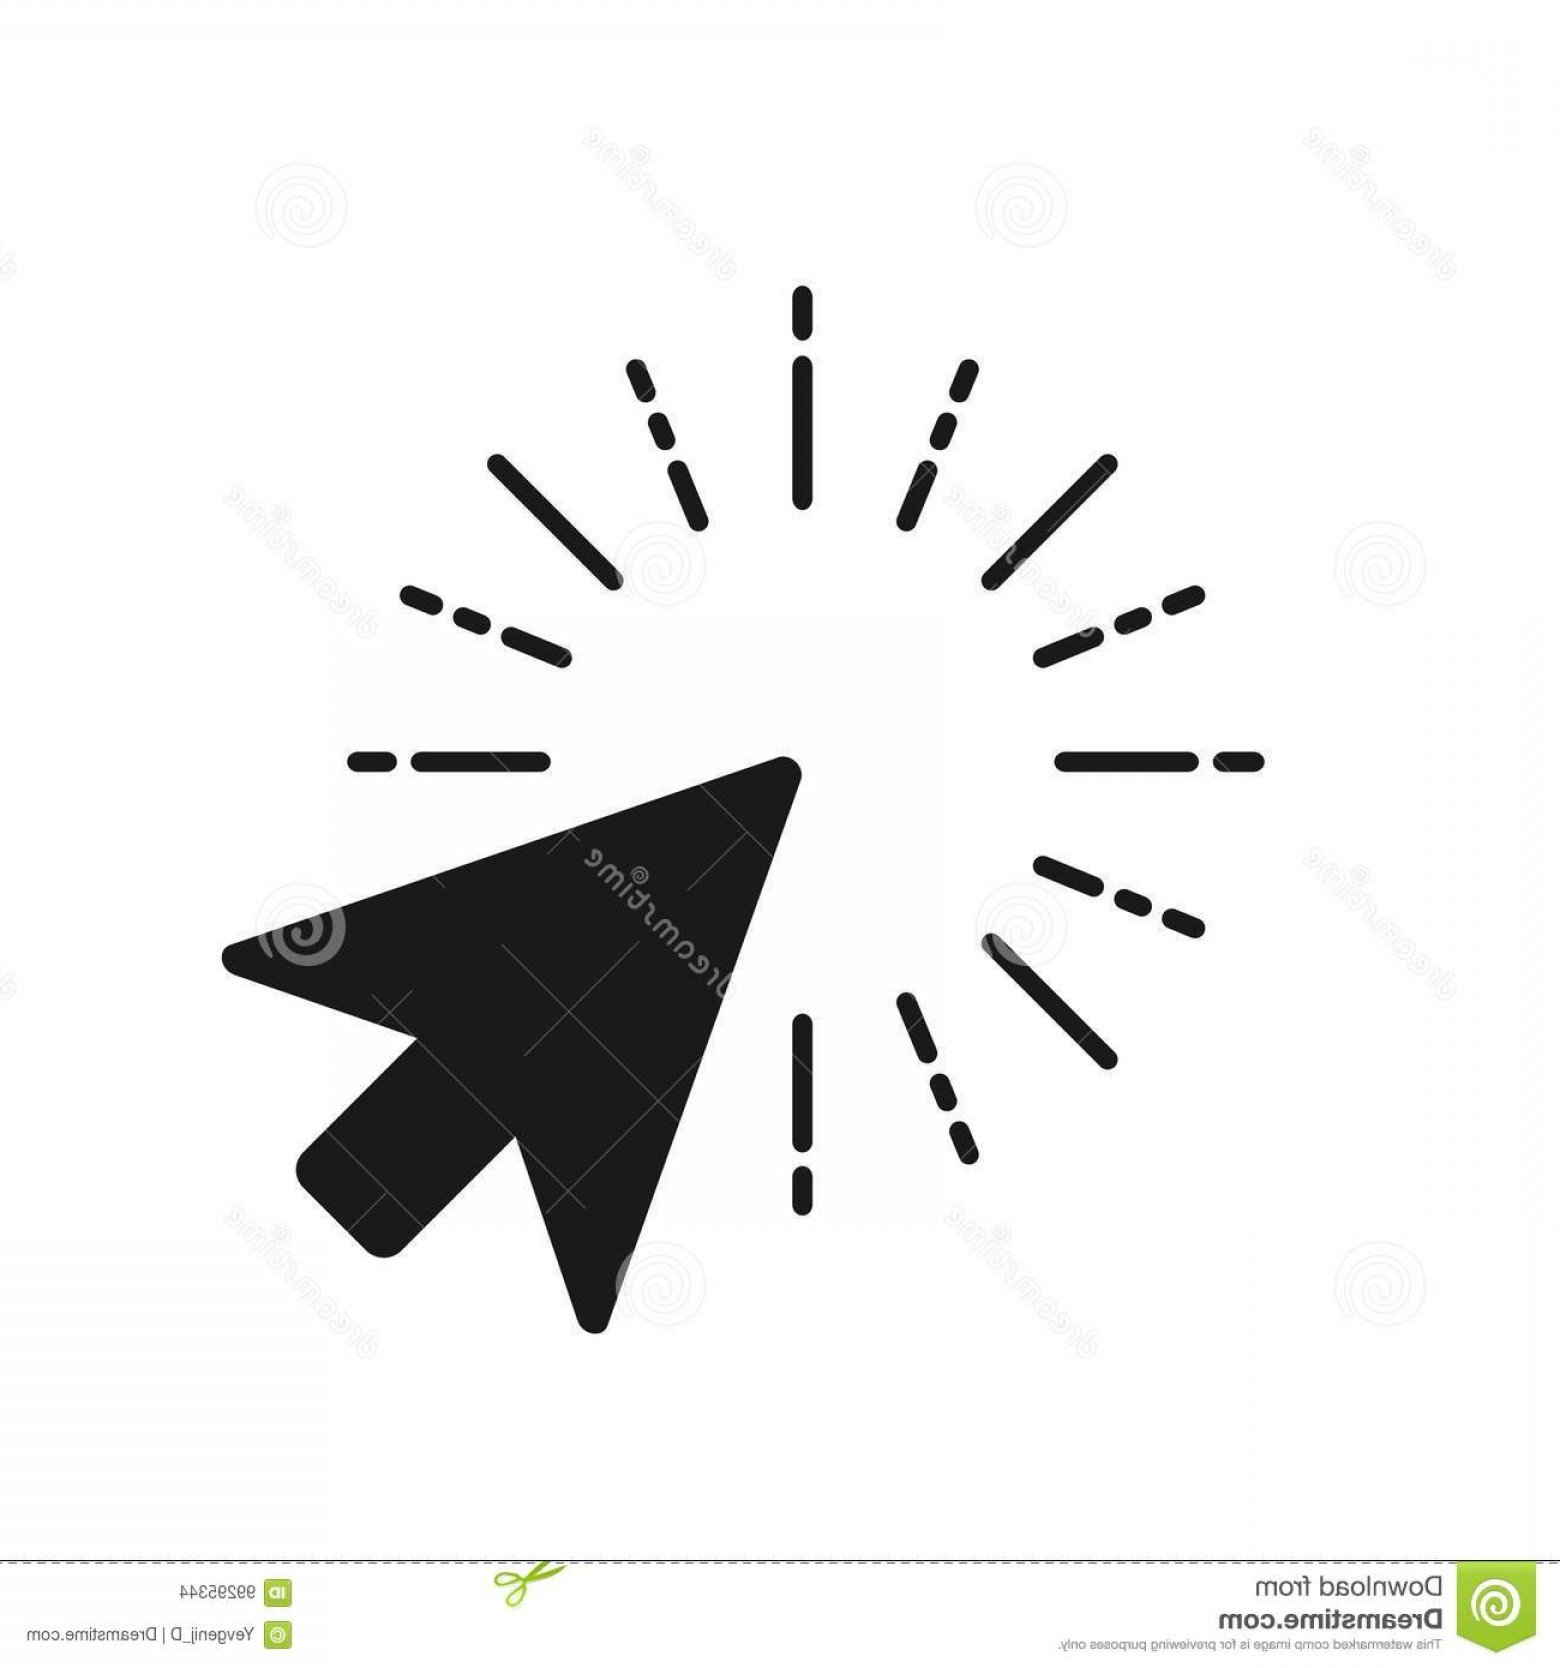 Computer Pointer Vector: Stock Illustration Click Icon Computer Mouse Pointer Arrow Vector Image